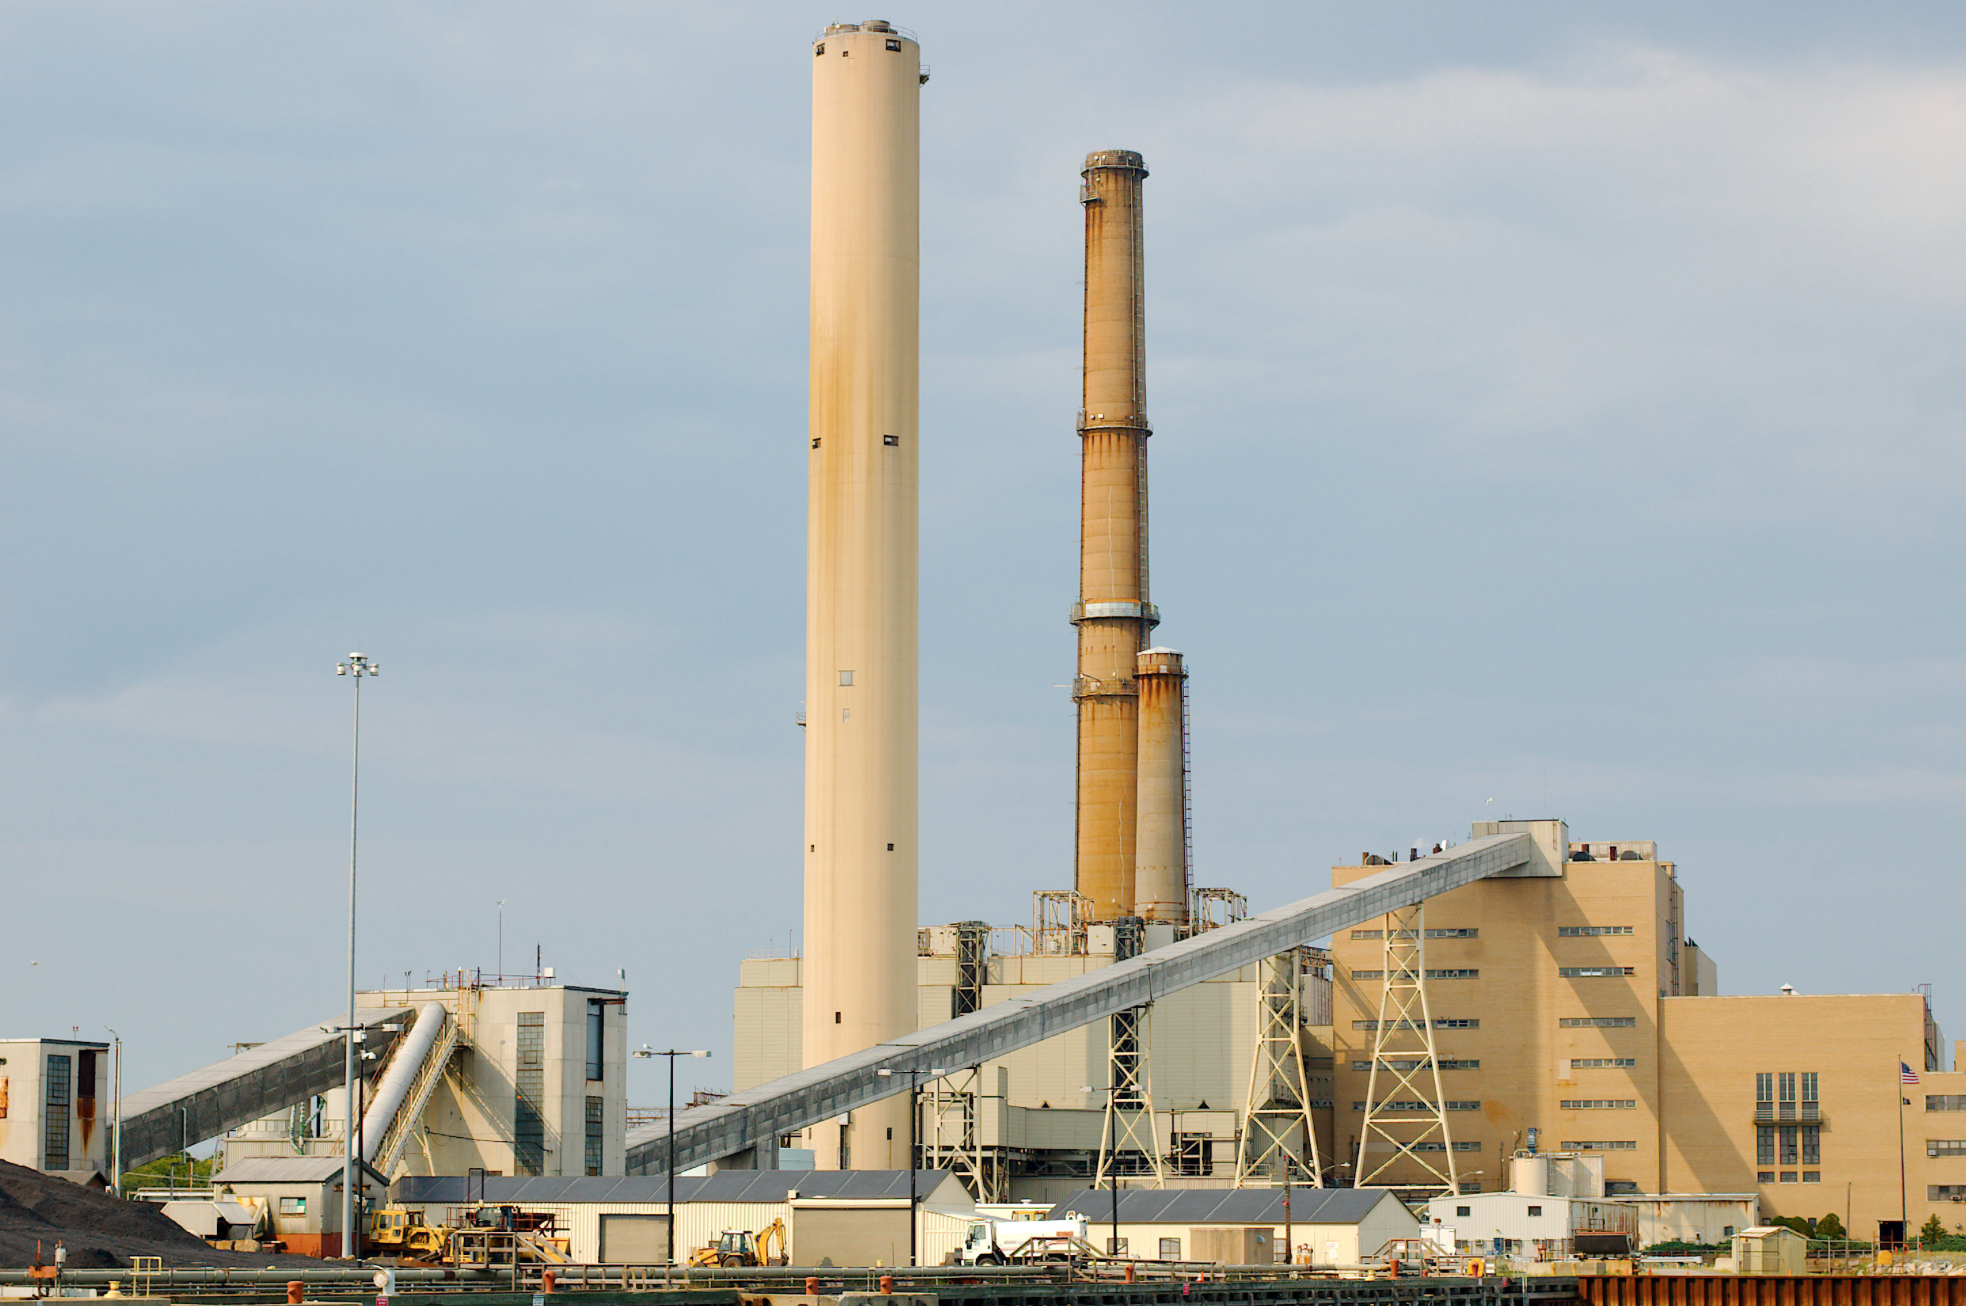 VIDEO AEP takes $2 3 billion hit on coal fired power plants